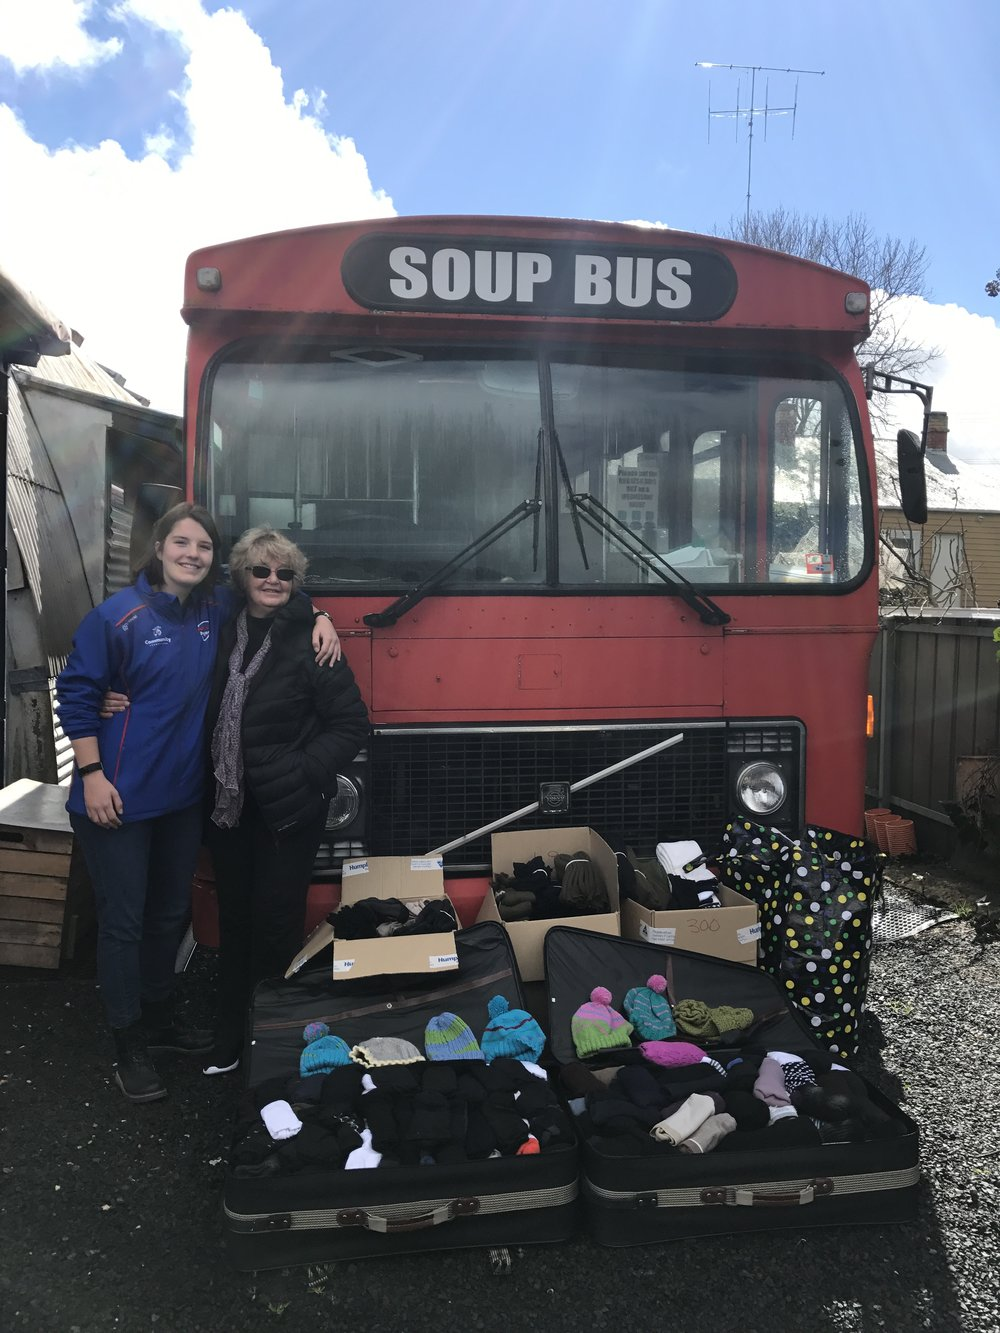 Amy with a member from the Ballarat SoupBus to accept our donation of over 1500+ socks from our 2017 Care Drive, the predecessor to Socks of the West.